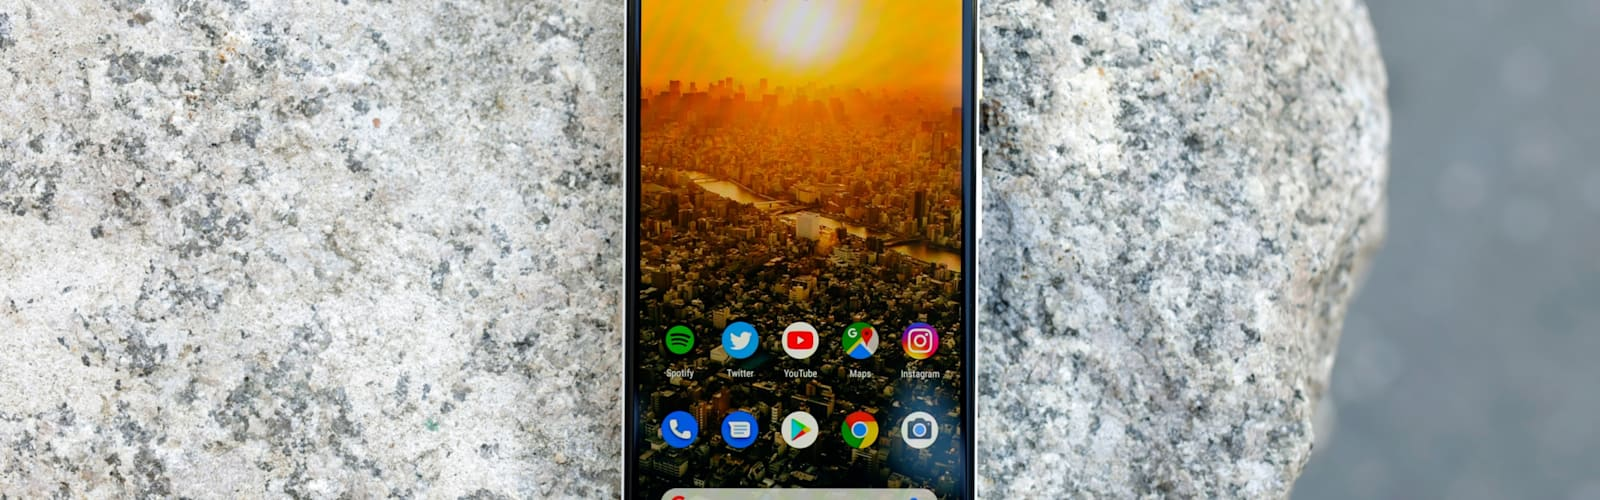 Our readers think the Pixel 3a is a first-rate budget phone